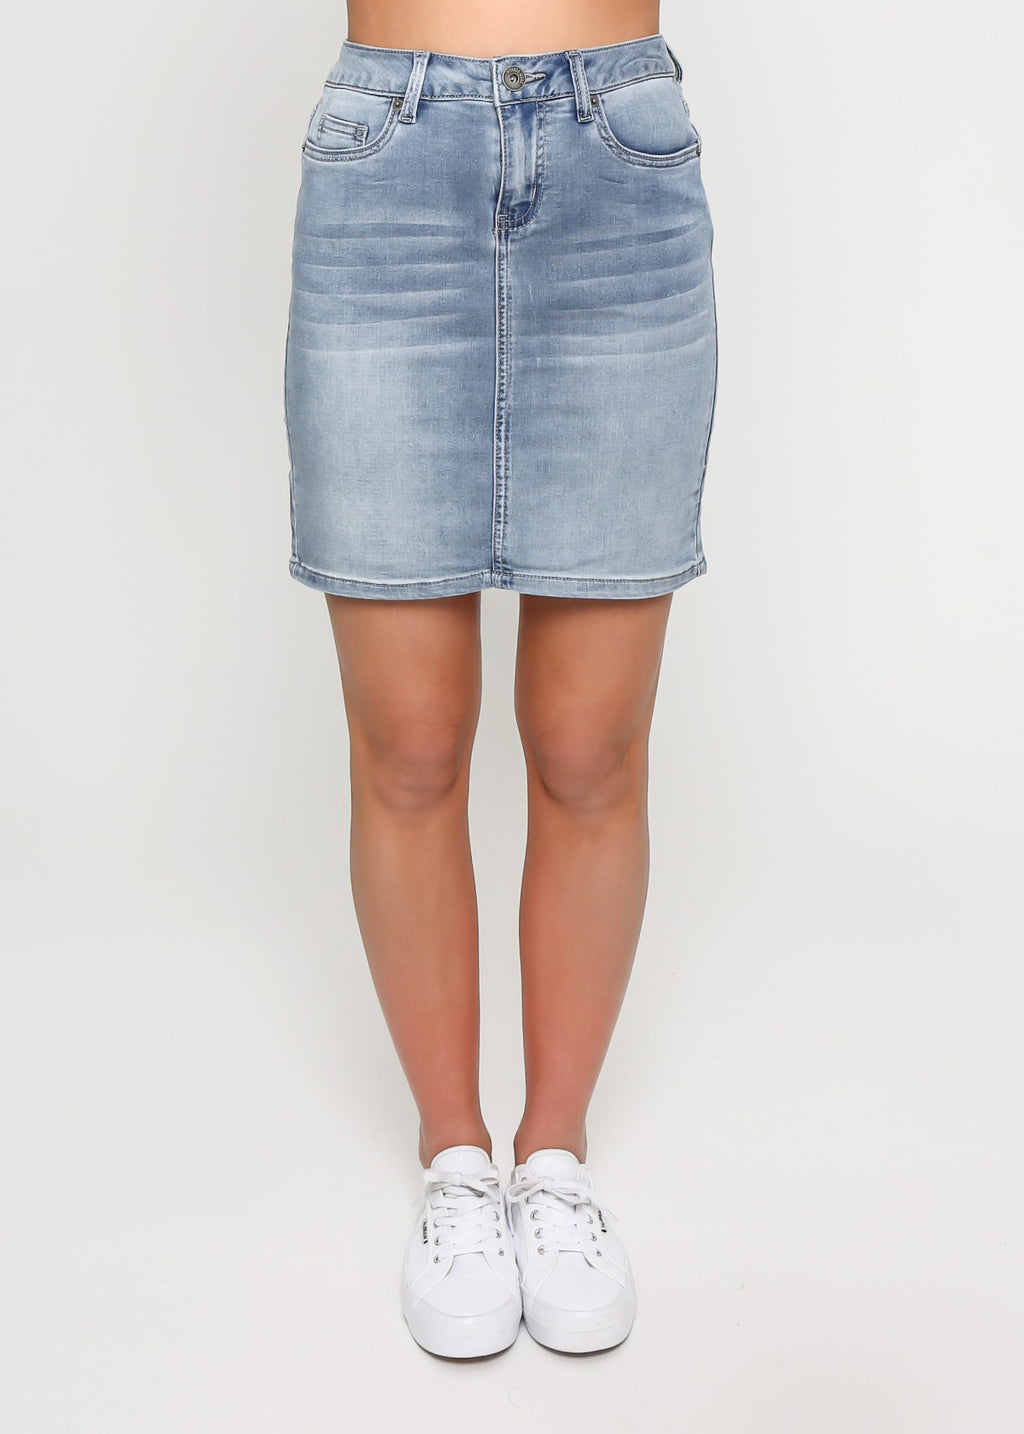 SELENA DENIM SKIRT - LIGHT BLUE